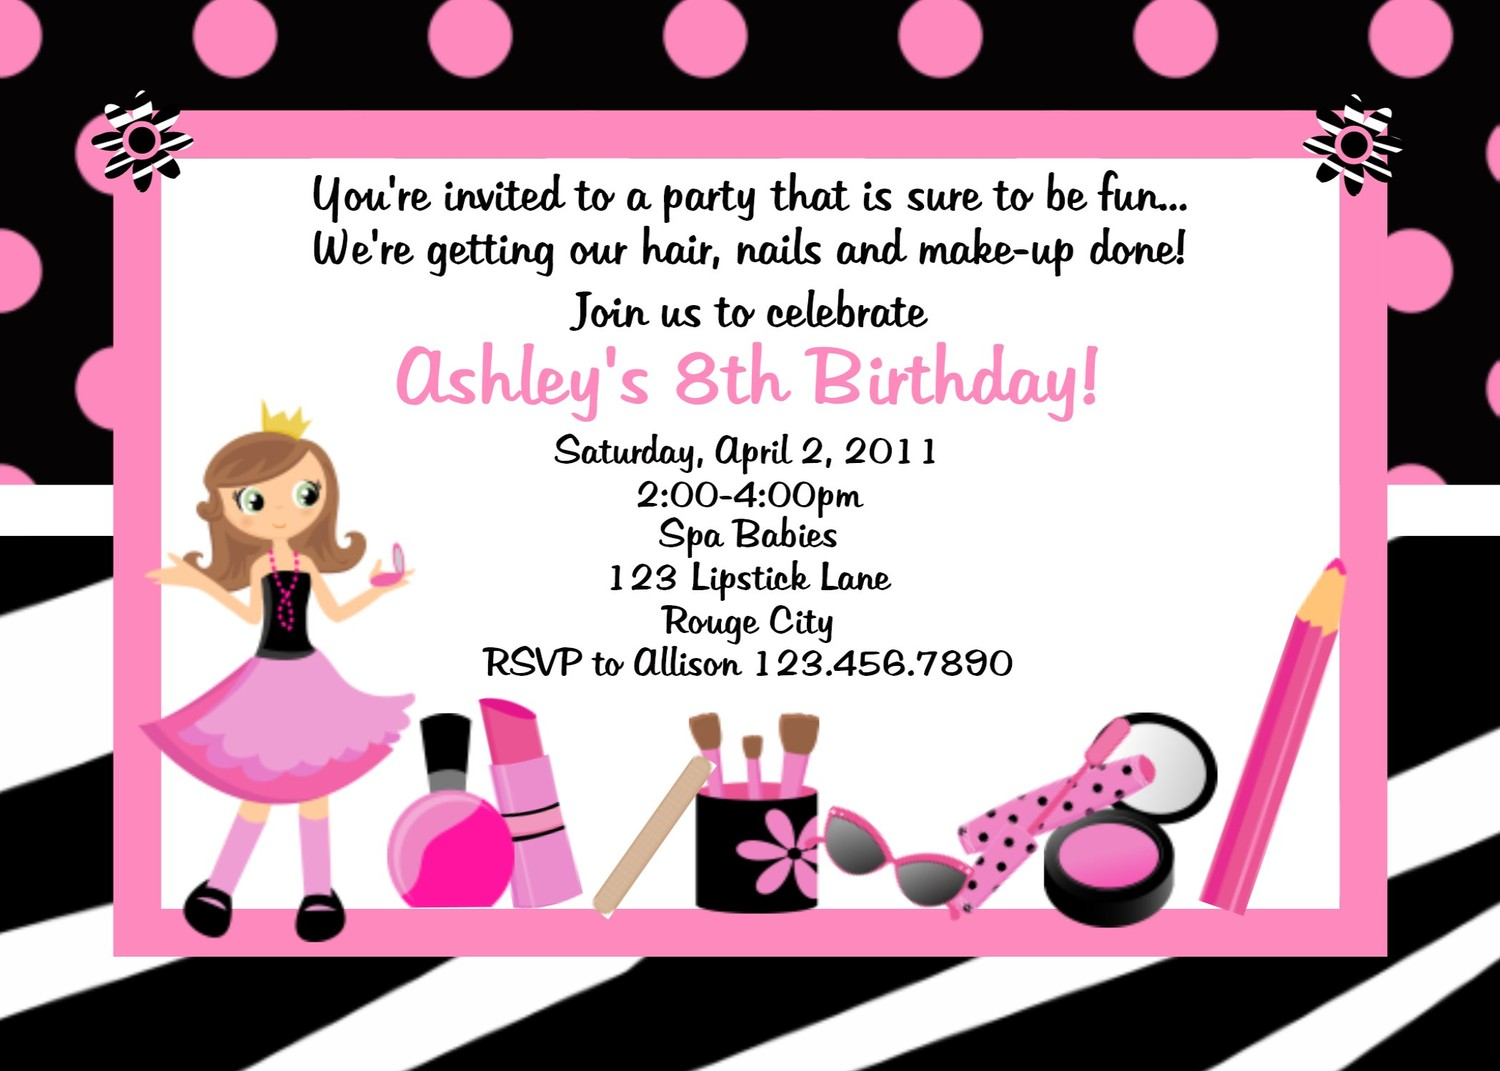 Printable birthday invitations spa party girls printable birthday invites stopboris Image collections